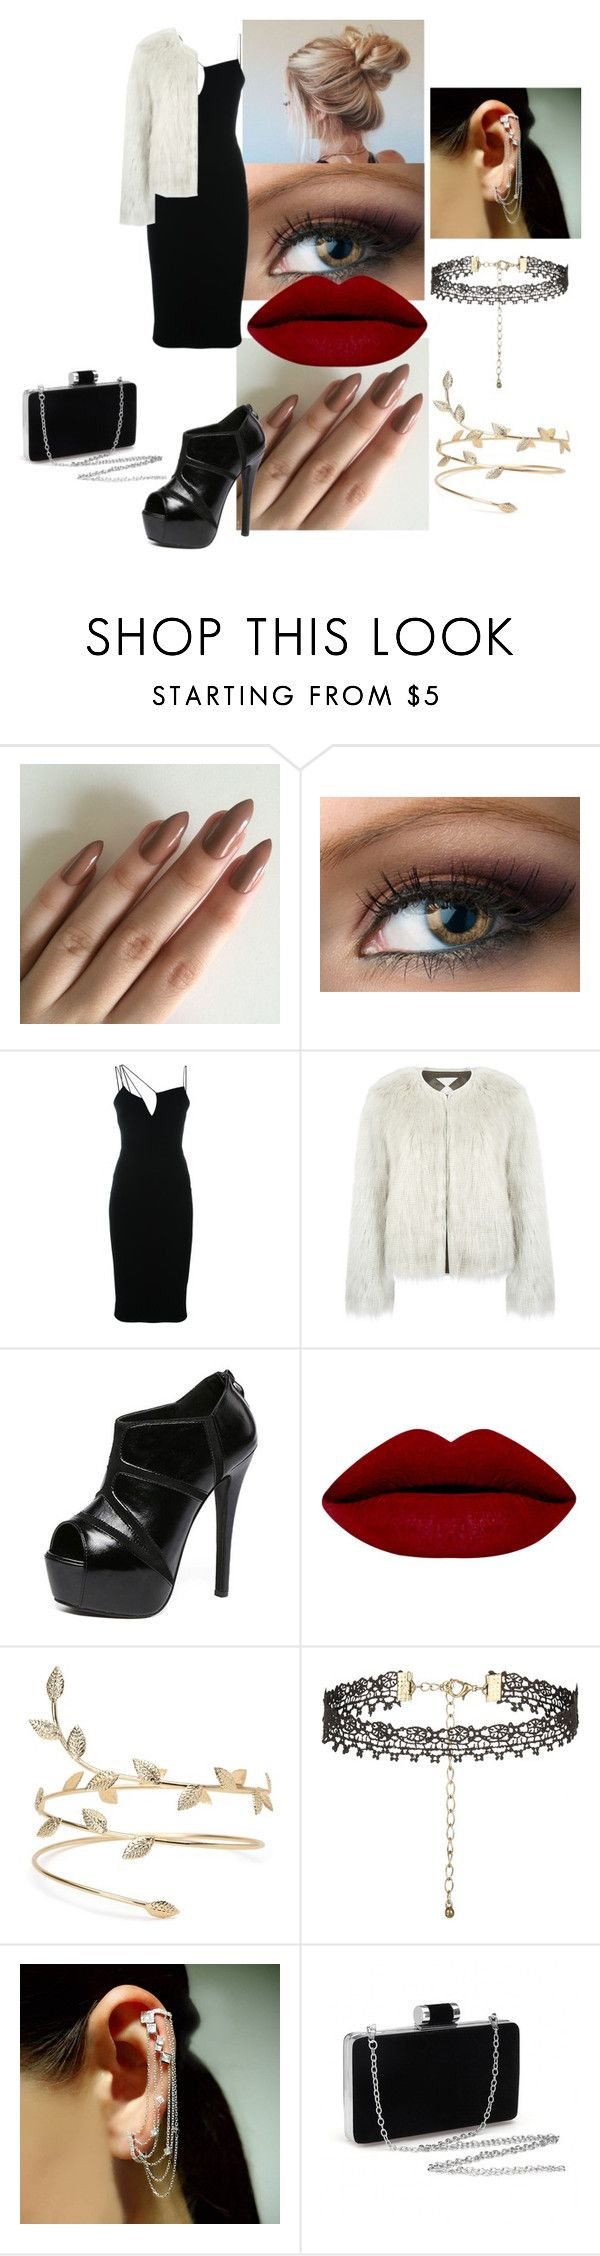 """Jessie Empire season 2 outfith 40"" by elliepetkova ❤ liked on Polyvore featuring Victoria Beckham, Surreal But Nice, WithChic, New Look and Mike Saatji"